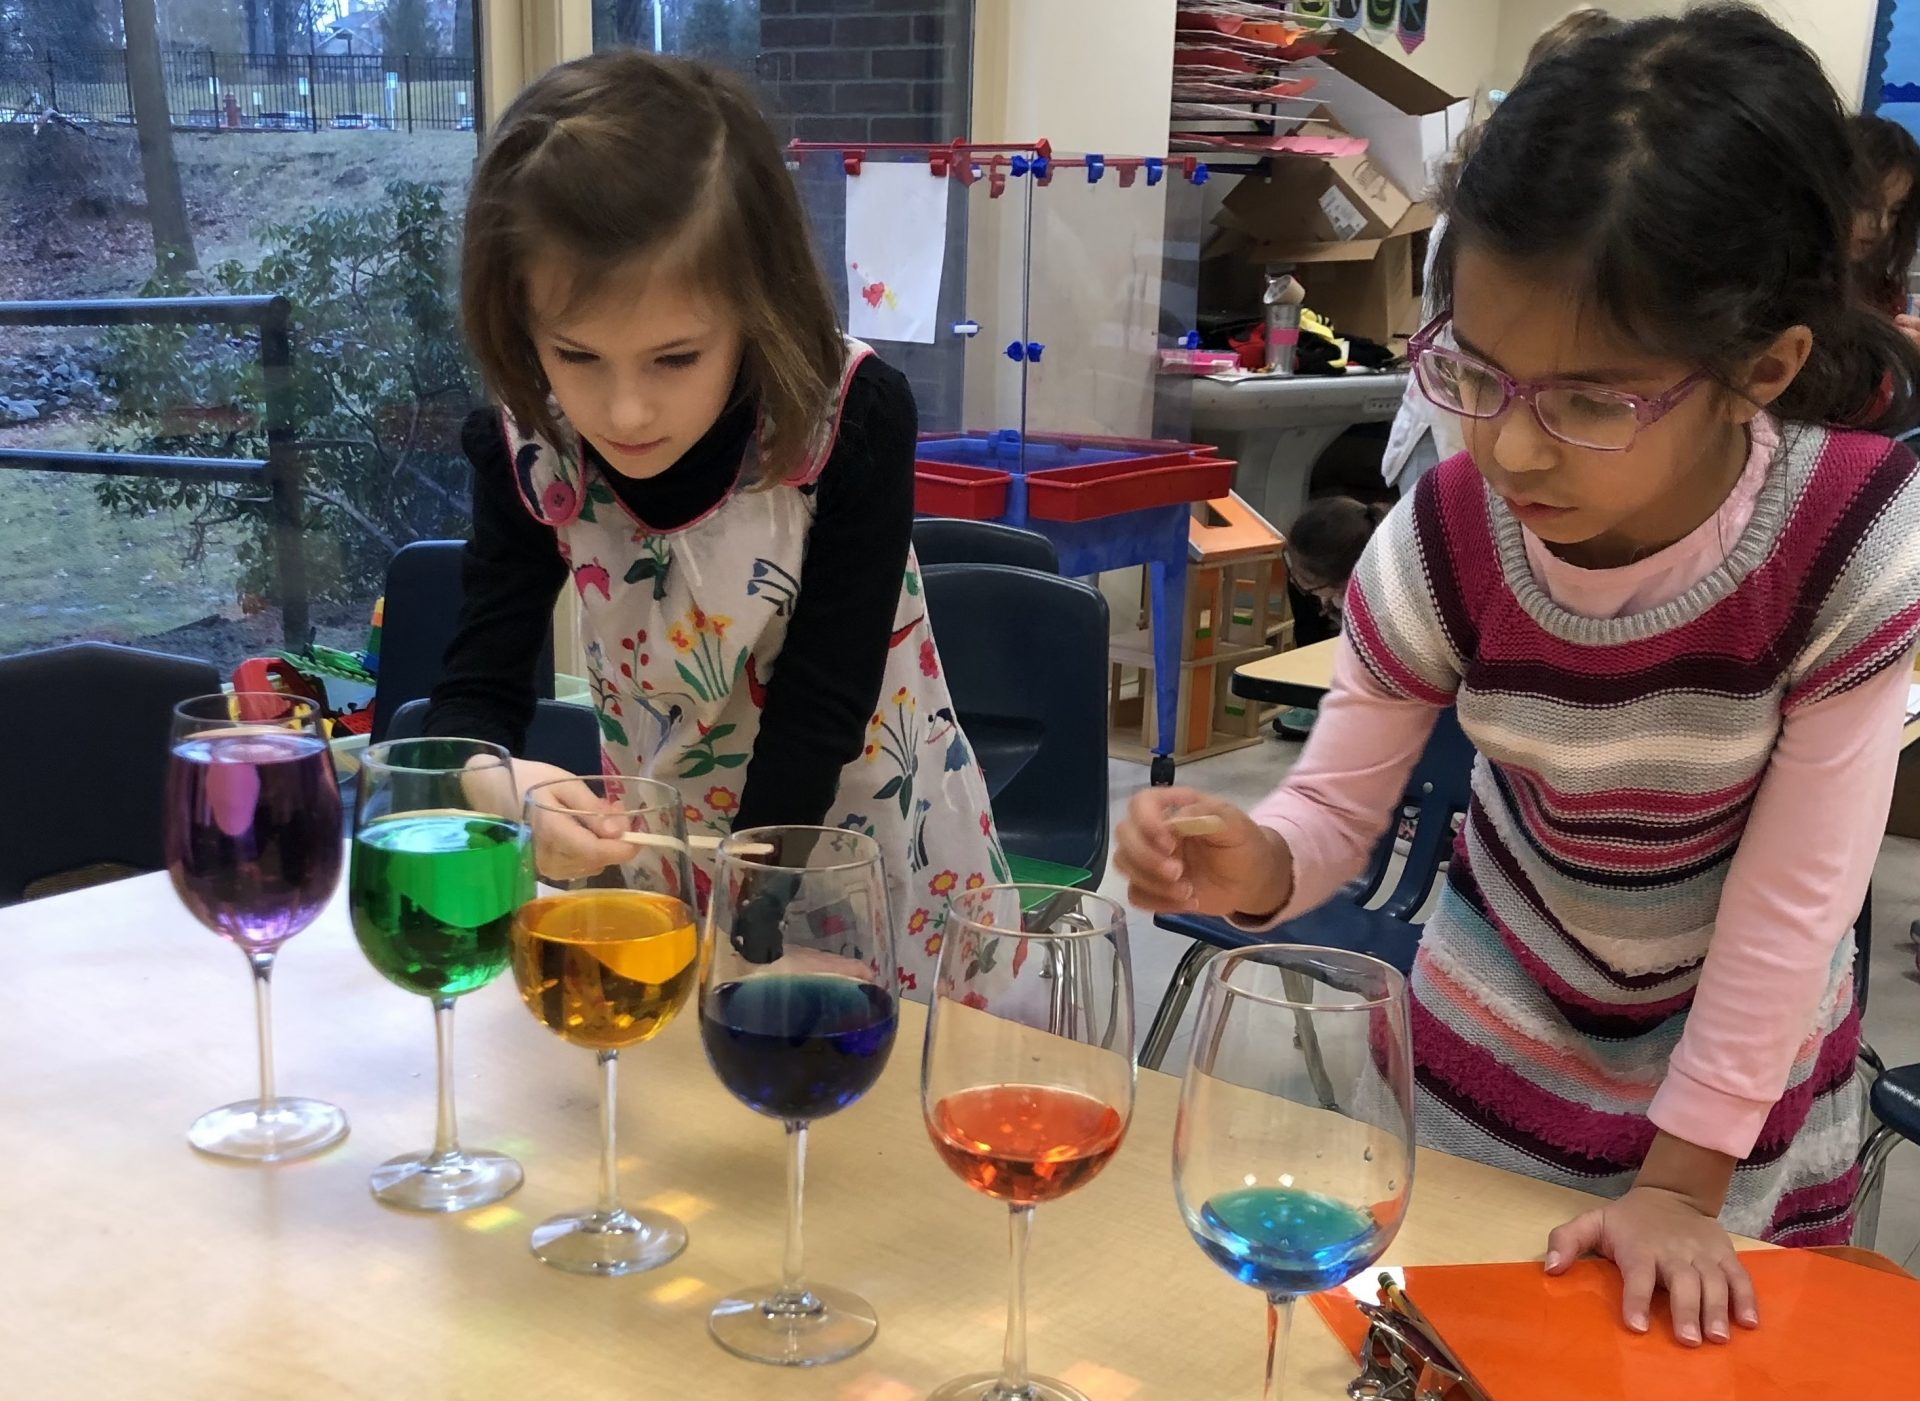 Two first grade girls work on a science project with colored water in class.